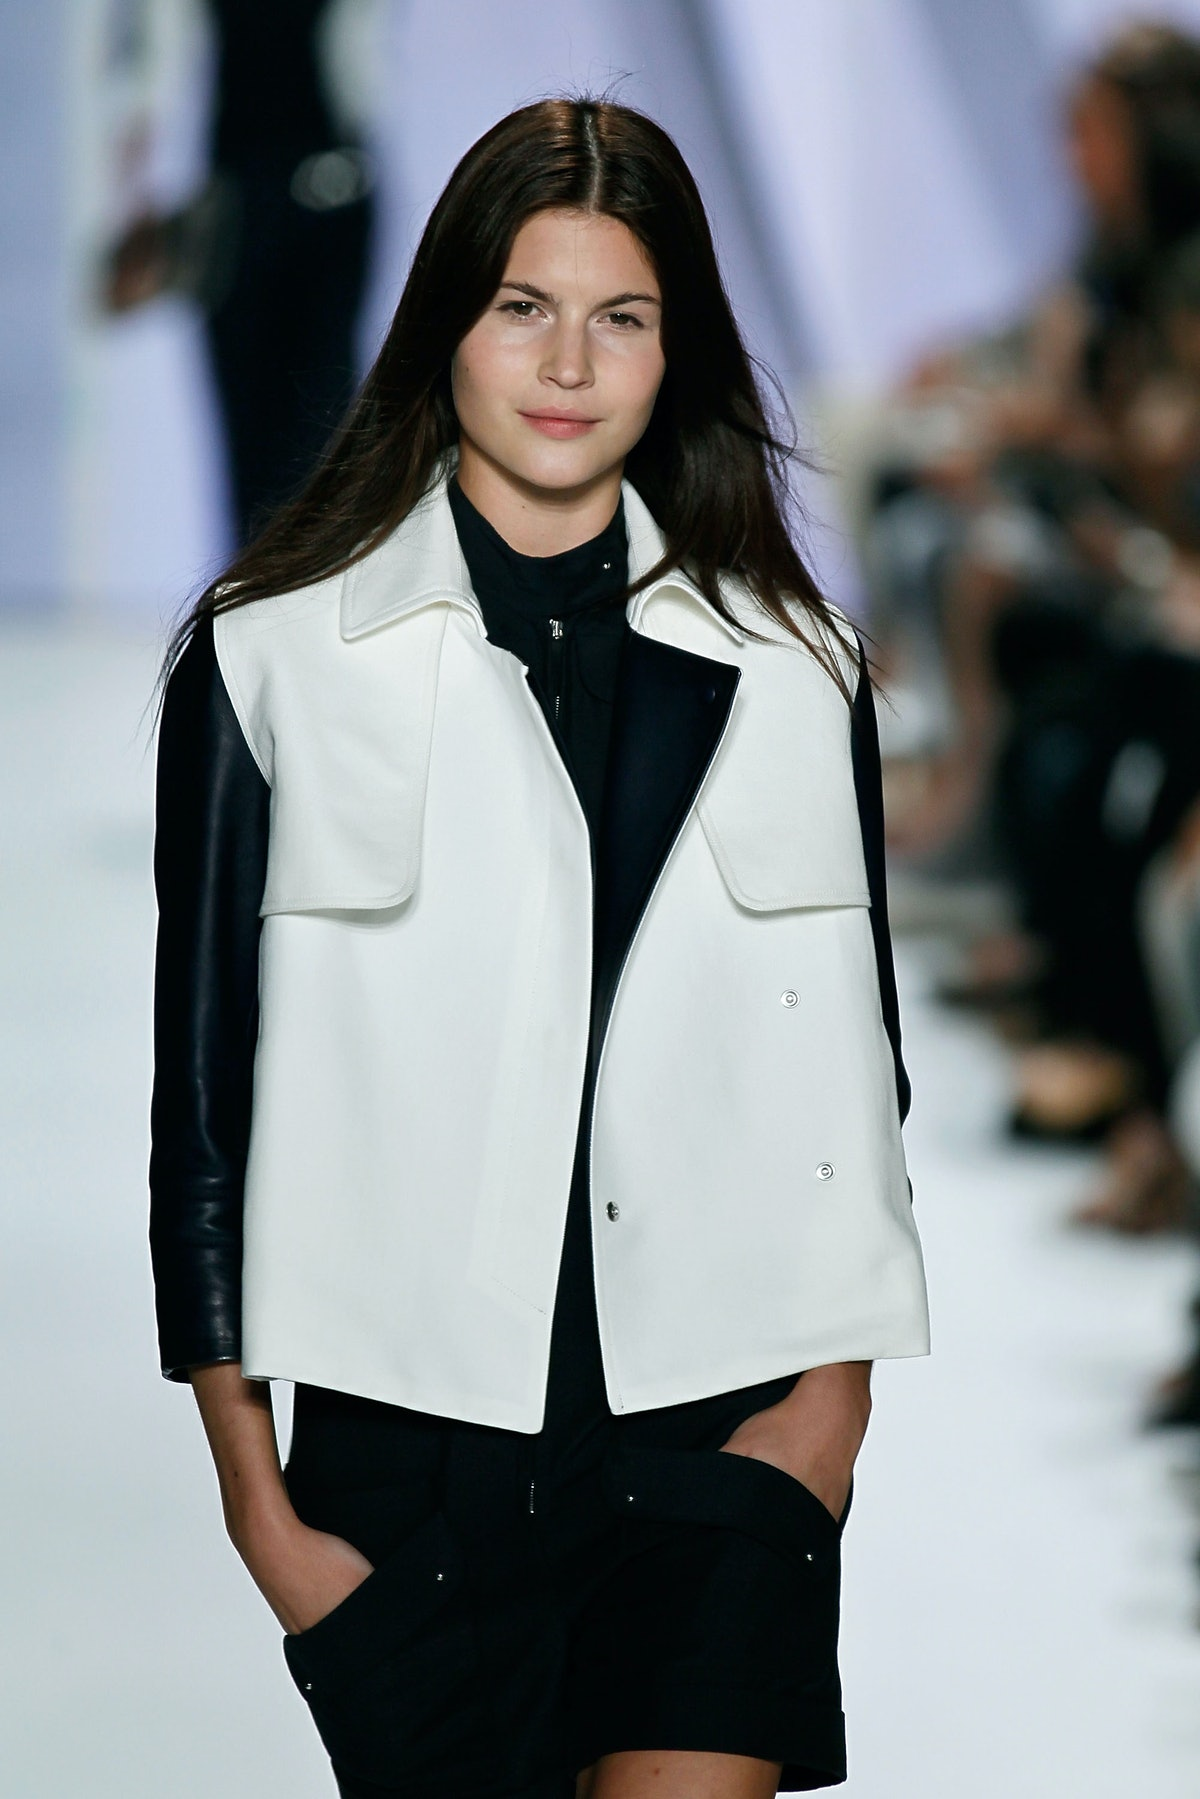 NEW YORK, NY - SEPTEMBER 10:  Model Lina Sandberg walks the runway at the Lacoste Spring 2012 fashion show during Mercedes-Benz Fashion Week at The Theater at Lincoln Center on September 10, 2011 in New York City.  (Photo by Peter Michael Dills/Getty Images  for Mercedes-Benz Fashion Week)